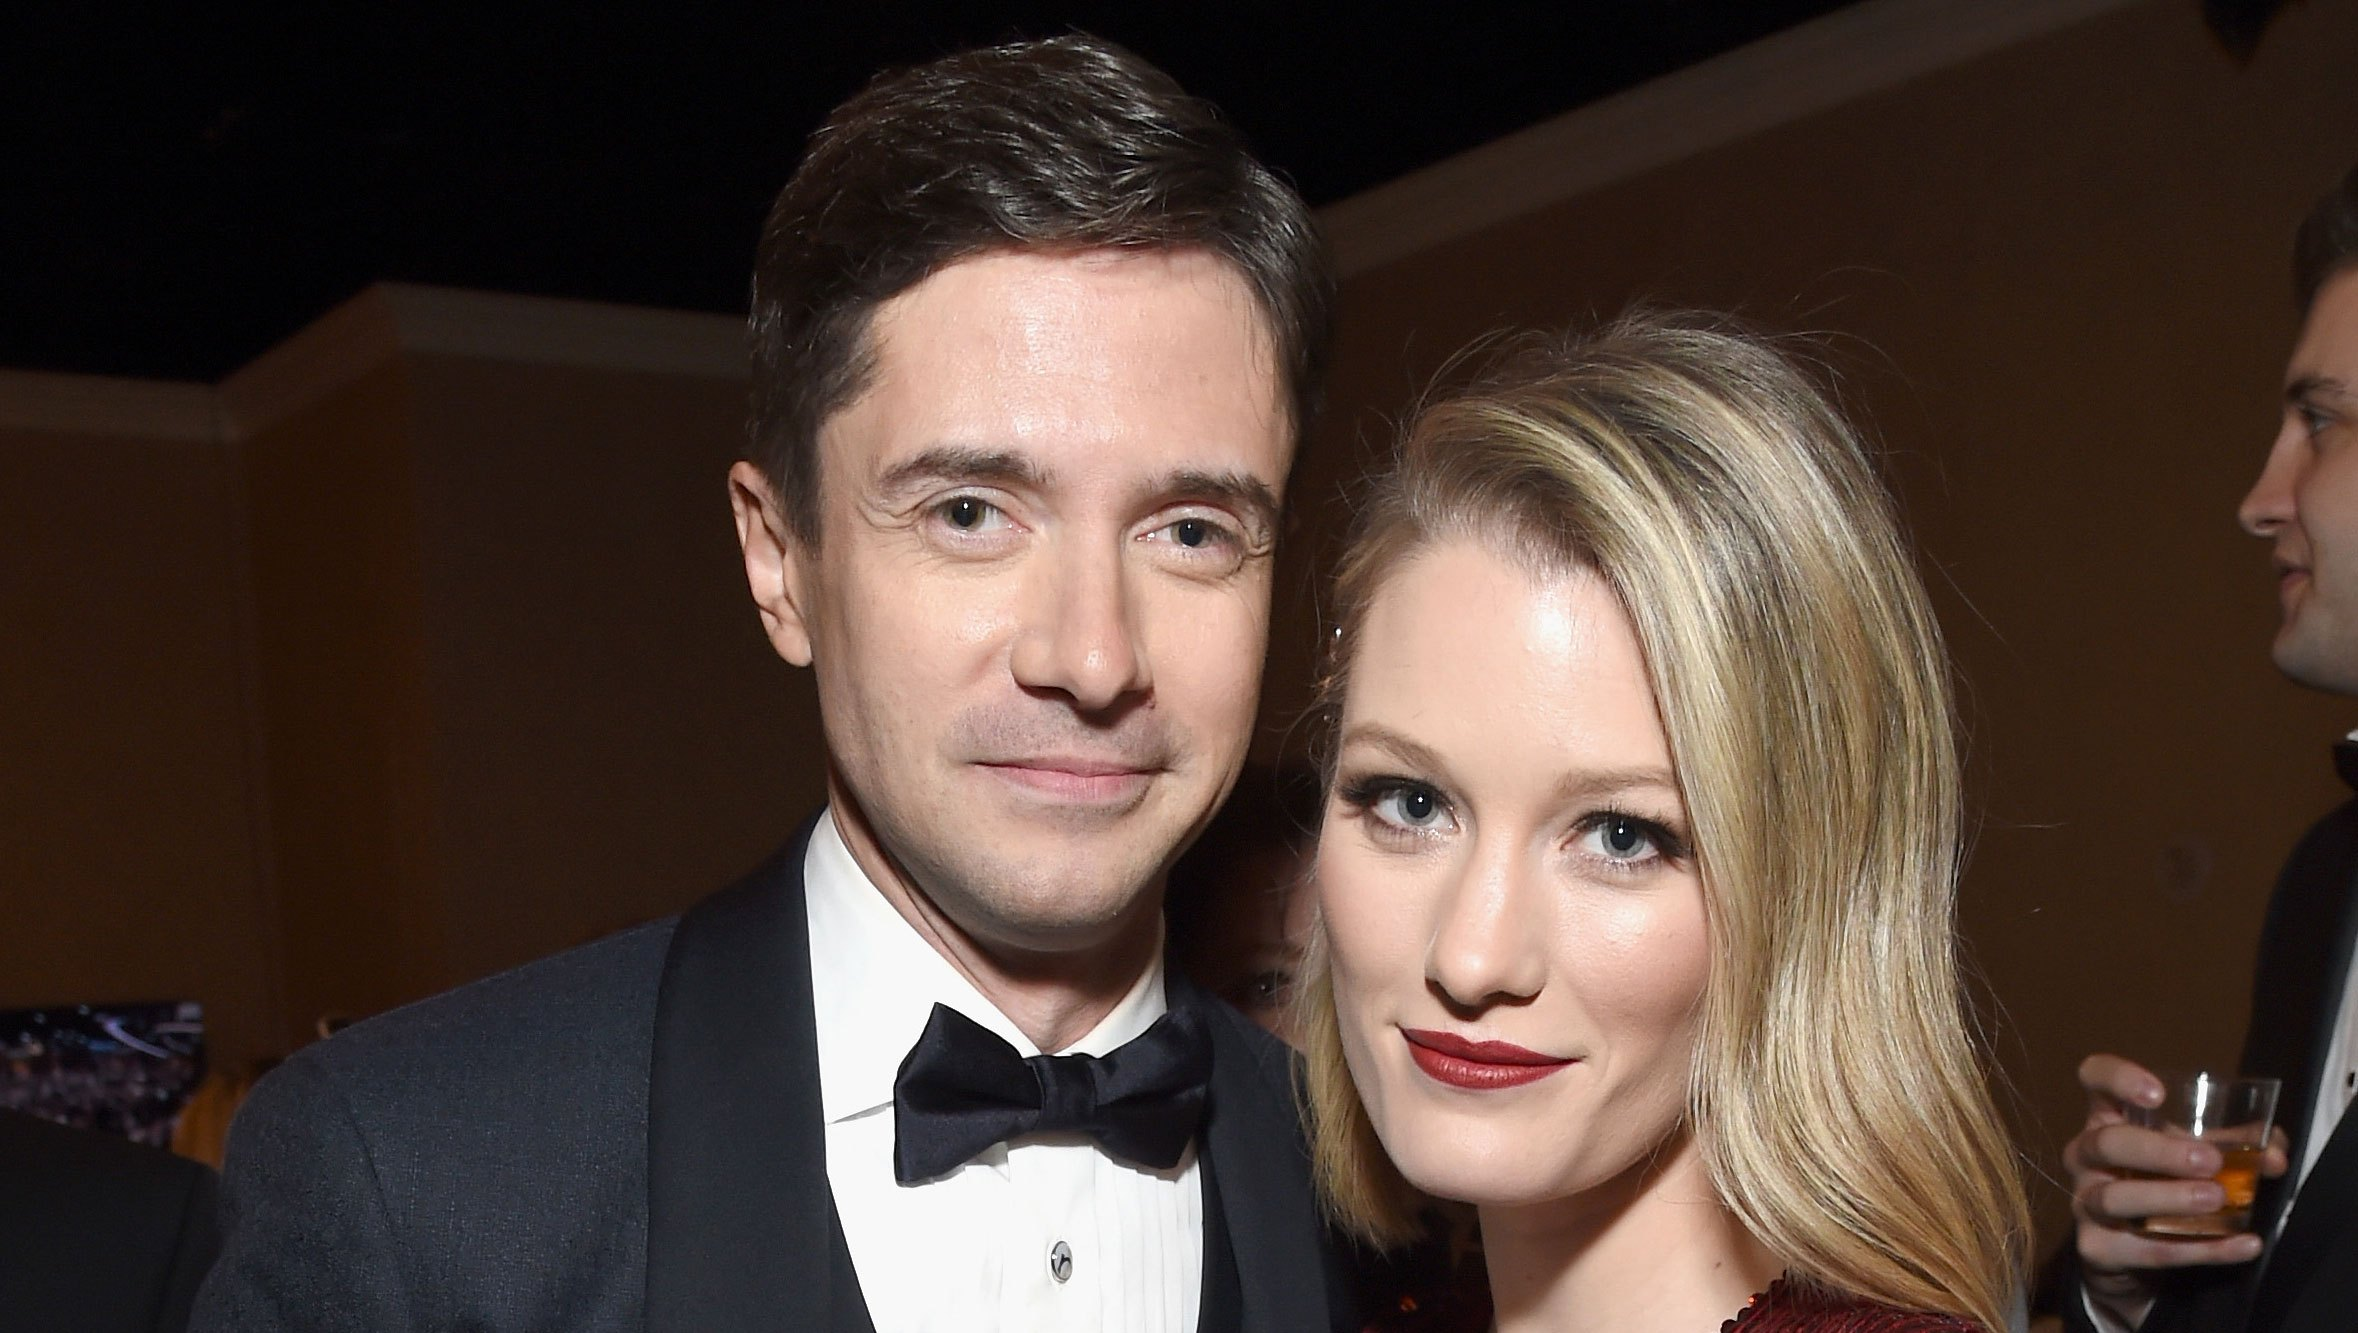 Topher Grace Calls Parenthood 'Awful But Amazing' Golden Globes 2019